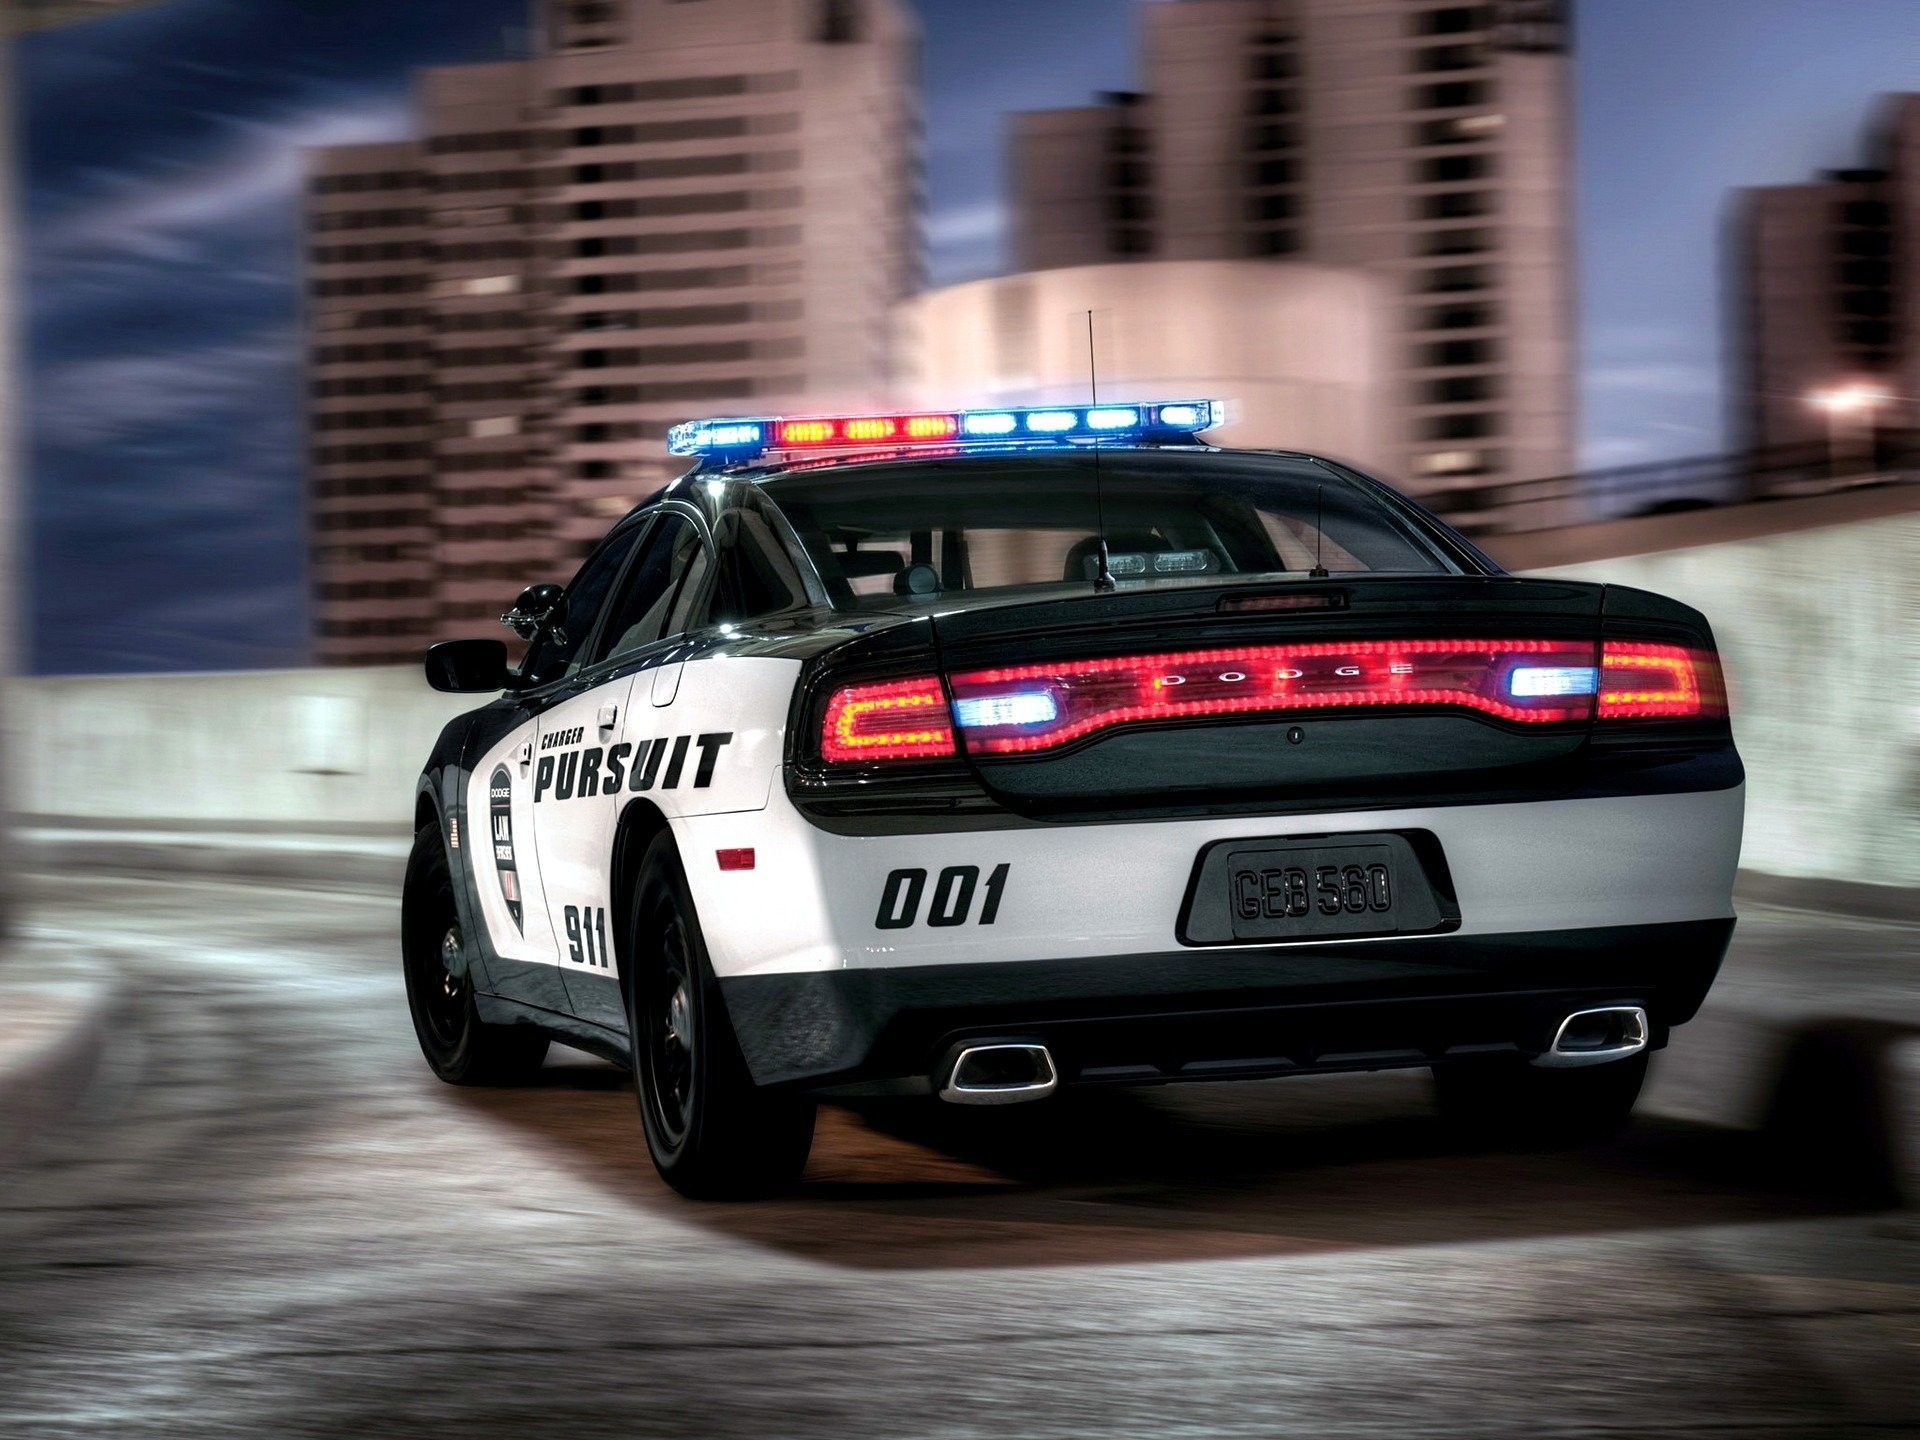 car wallpapers police dodge charger pursuit beautiful desktop vehicles  wallpapers dodge chardzher police machine